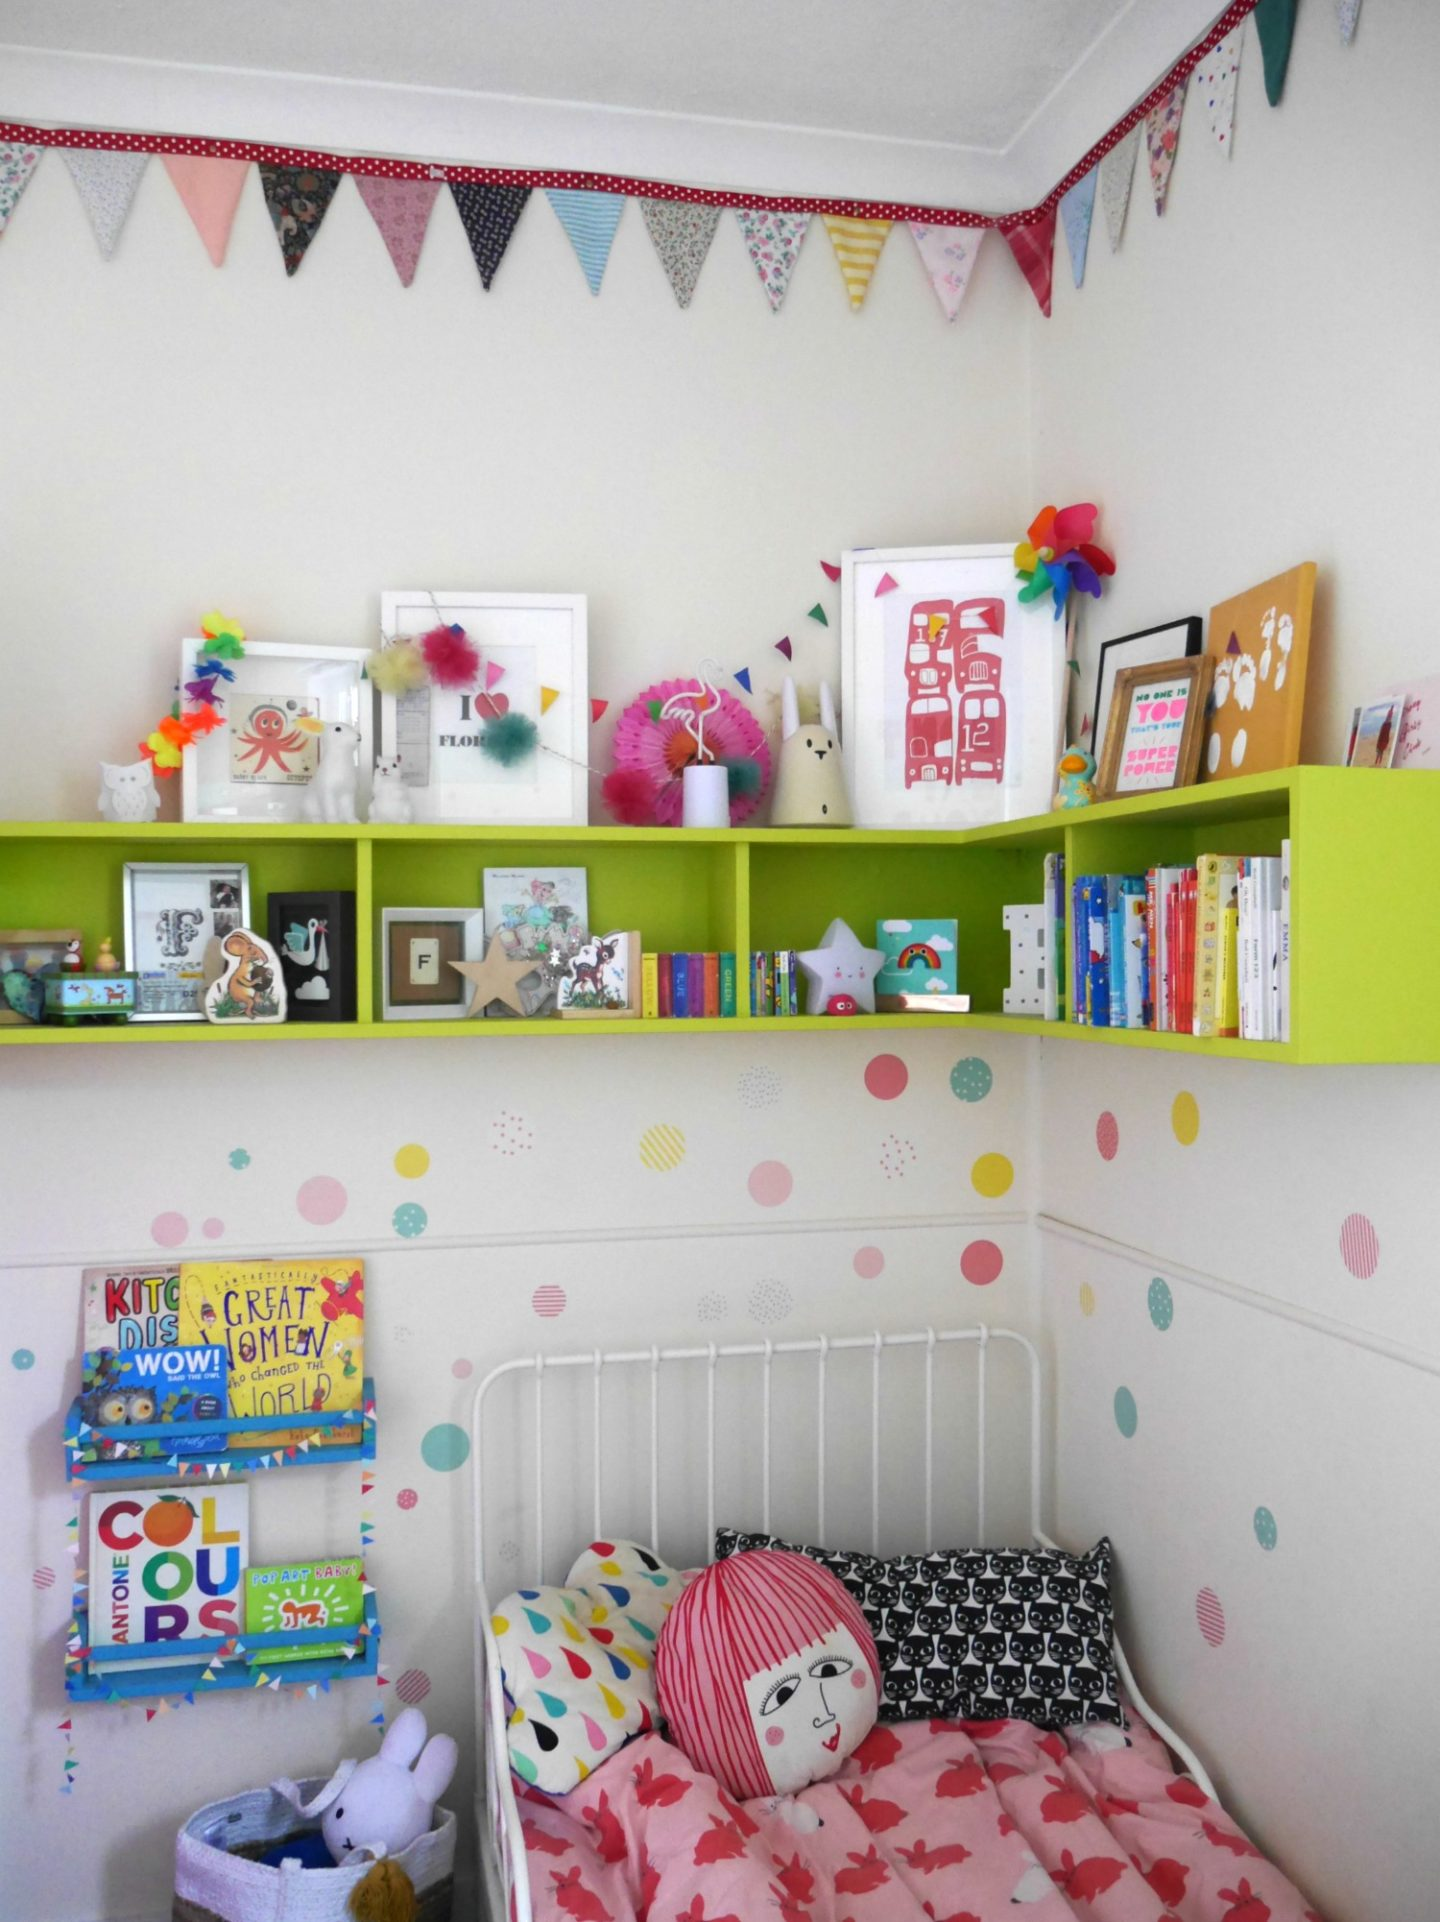 Colourful children's bedrooms with painted shelves and wall stickers